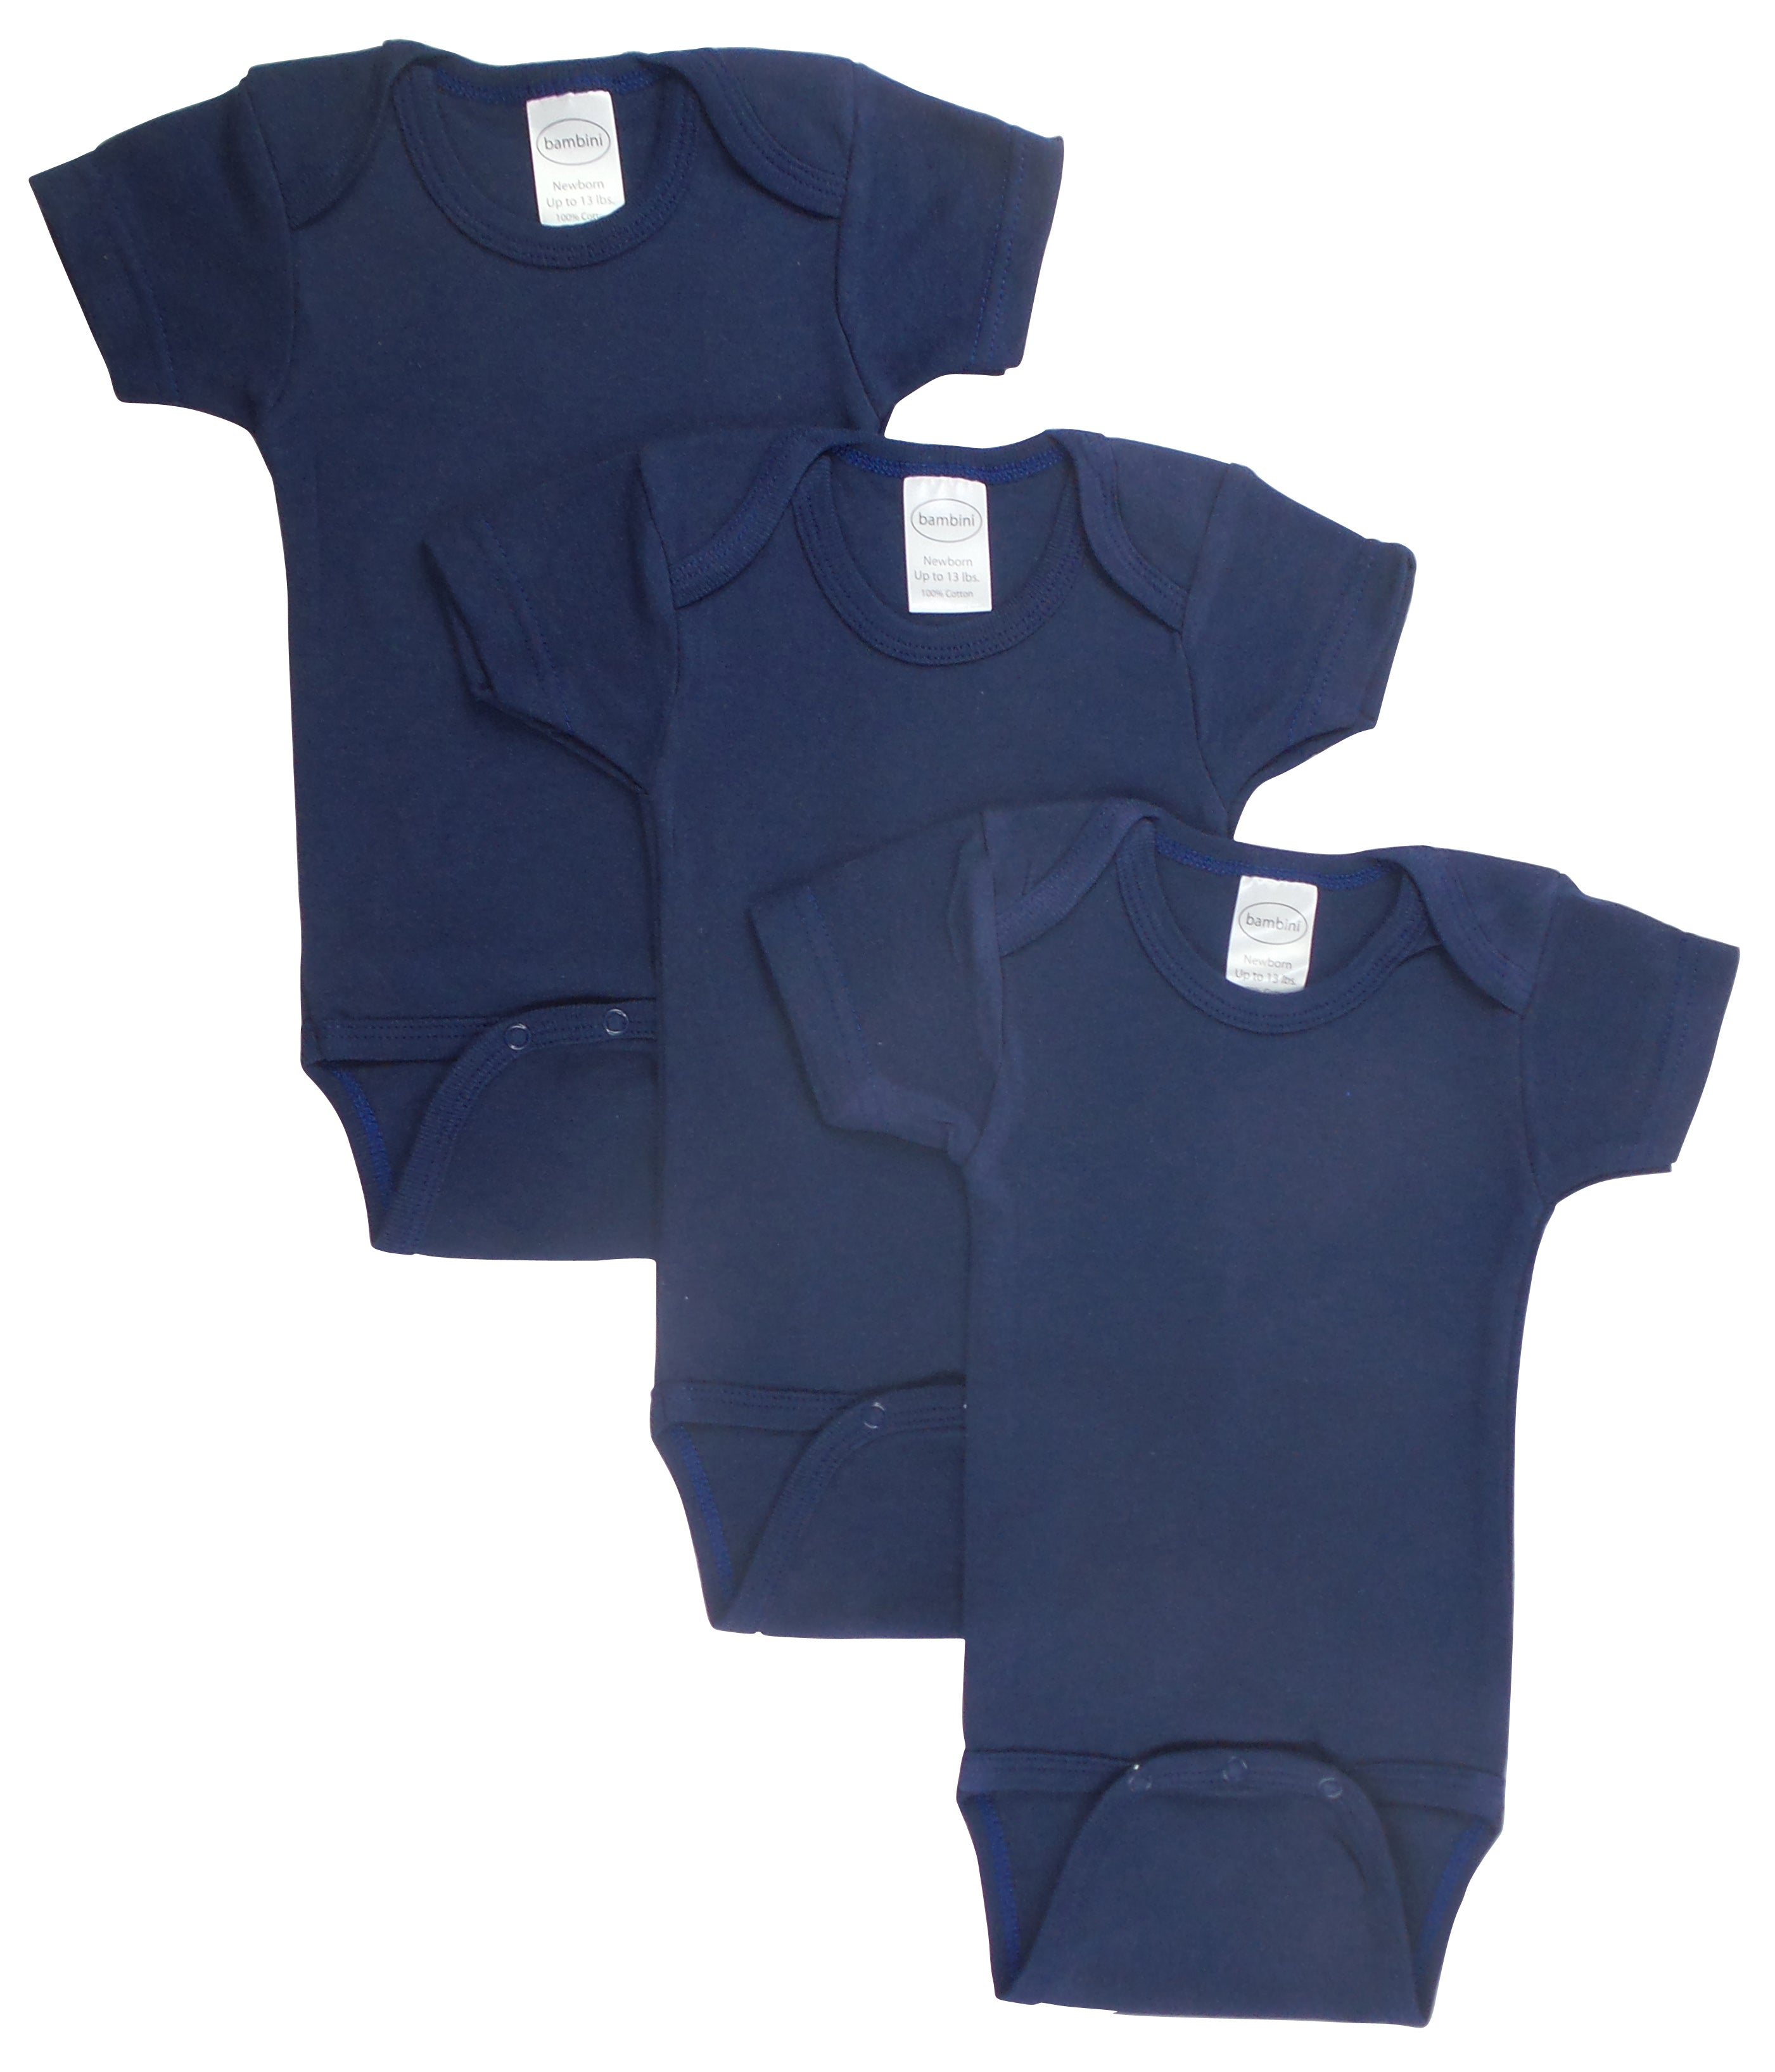 Bambini Navy Bodysuit Onezies (Pack of 3)